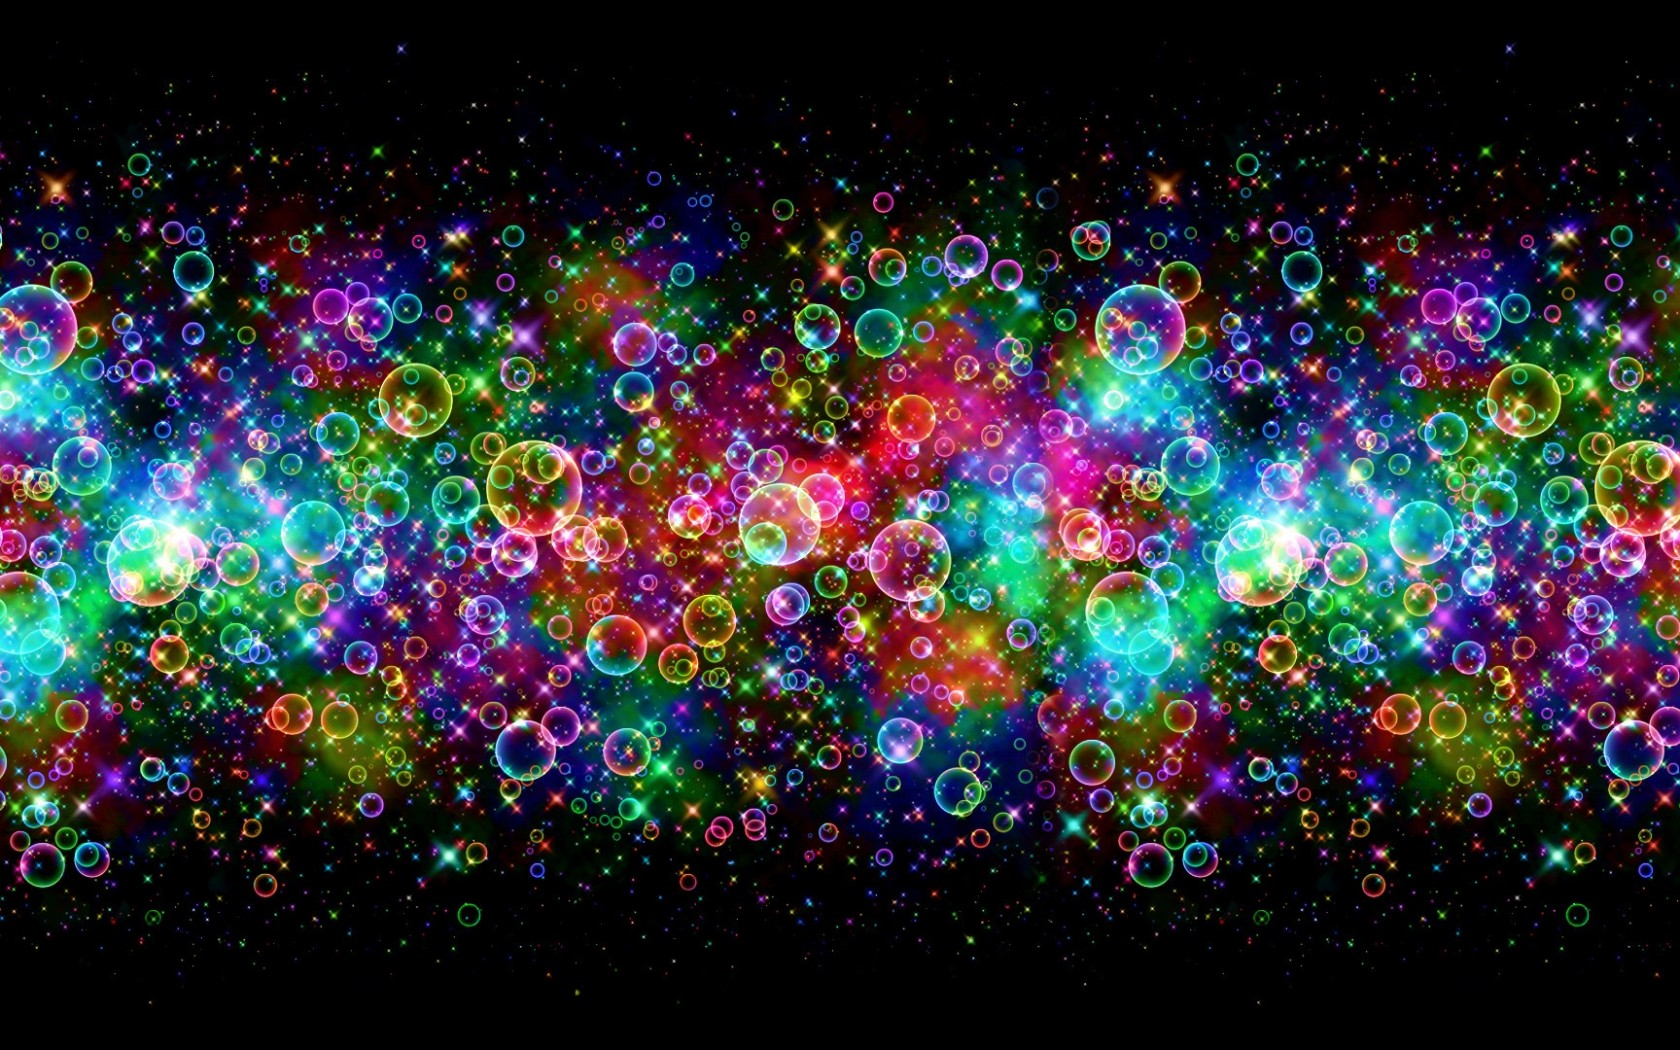 Colourful 3d Bubbles Wallpapers Hd Hd Wallpapers Hd